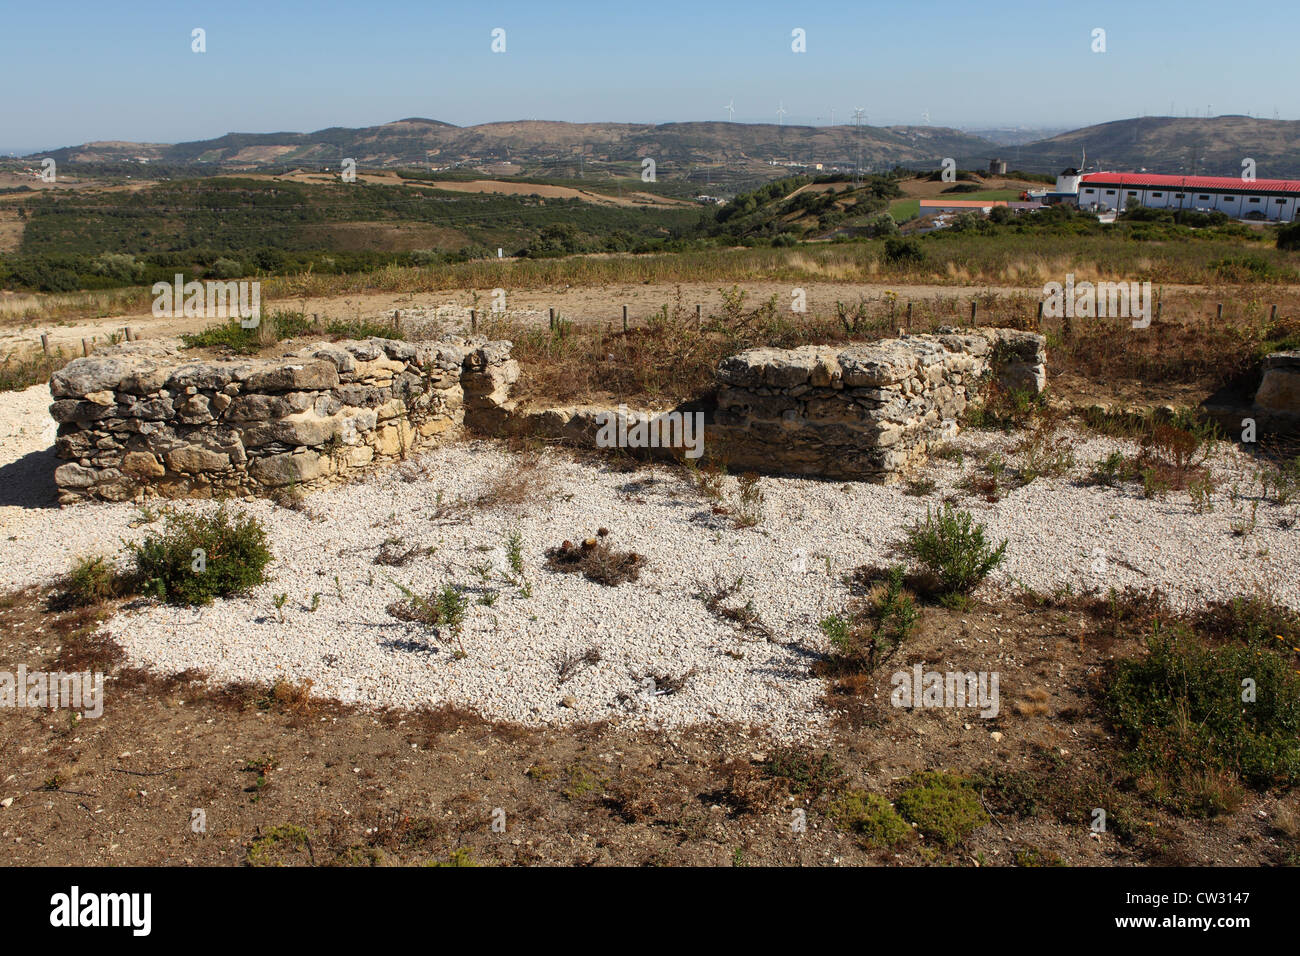 Ruins within Forte da Carvalha, fort number 10 of the 152 forts and earthworks of the Lines of Torres Vedras. - Stock Image